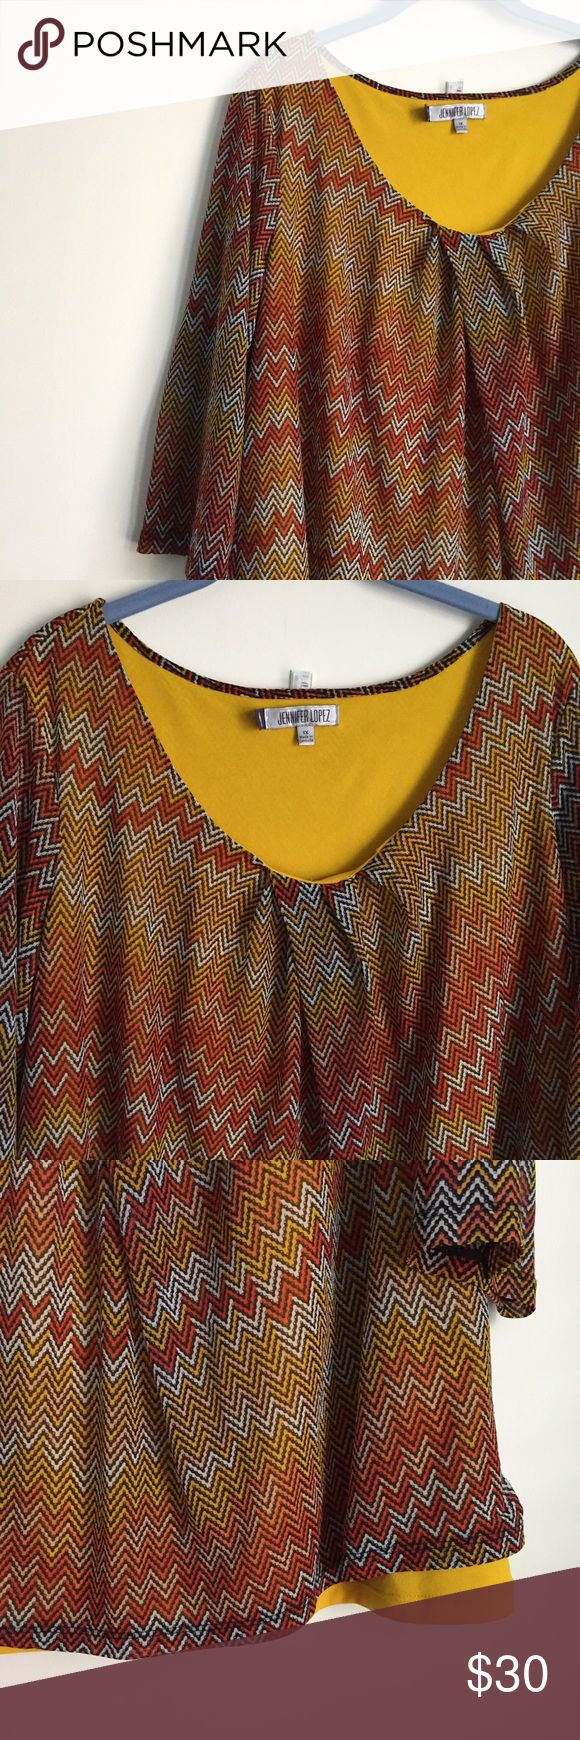 Jennifer Lopez Chevron Top 1X Vibrant chevron top with scoop neckline, mustard colored lining and 3/4 length sleeves.   Size: 1X 100% Polyester   Bundle & Save! 🛍 Jennifer Lopez Tops Blouses